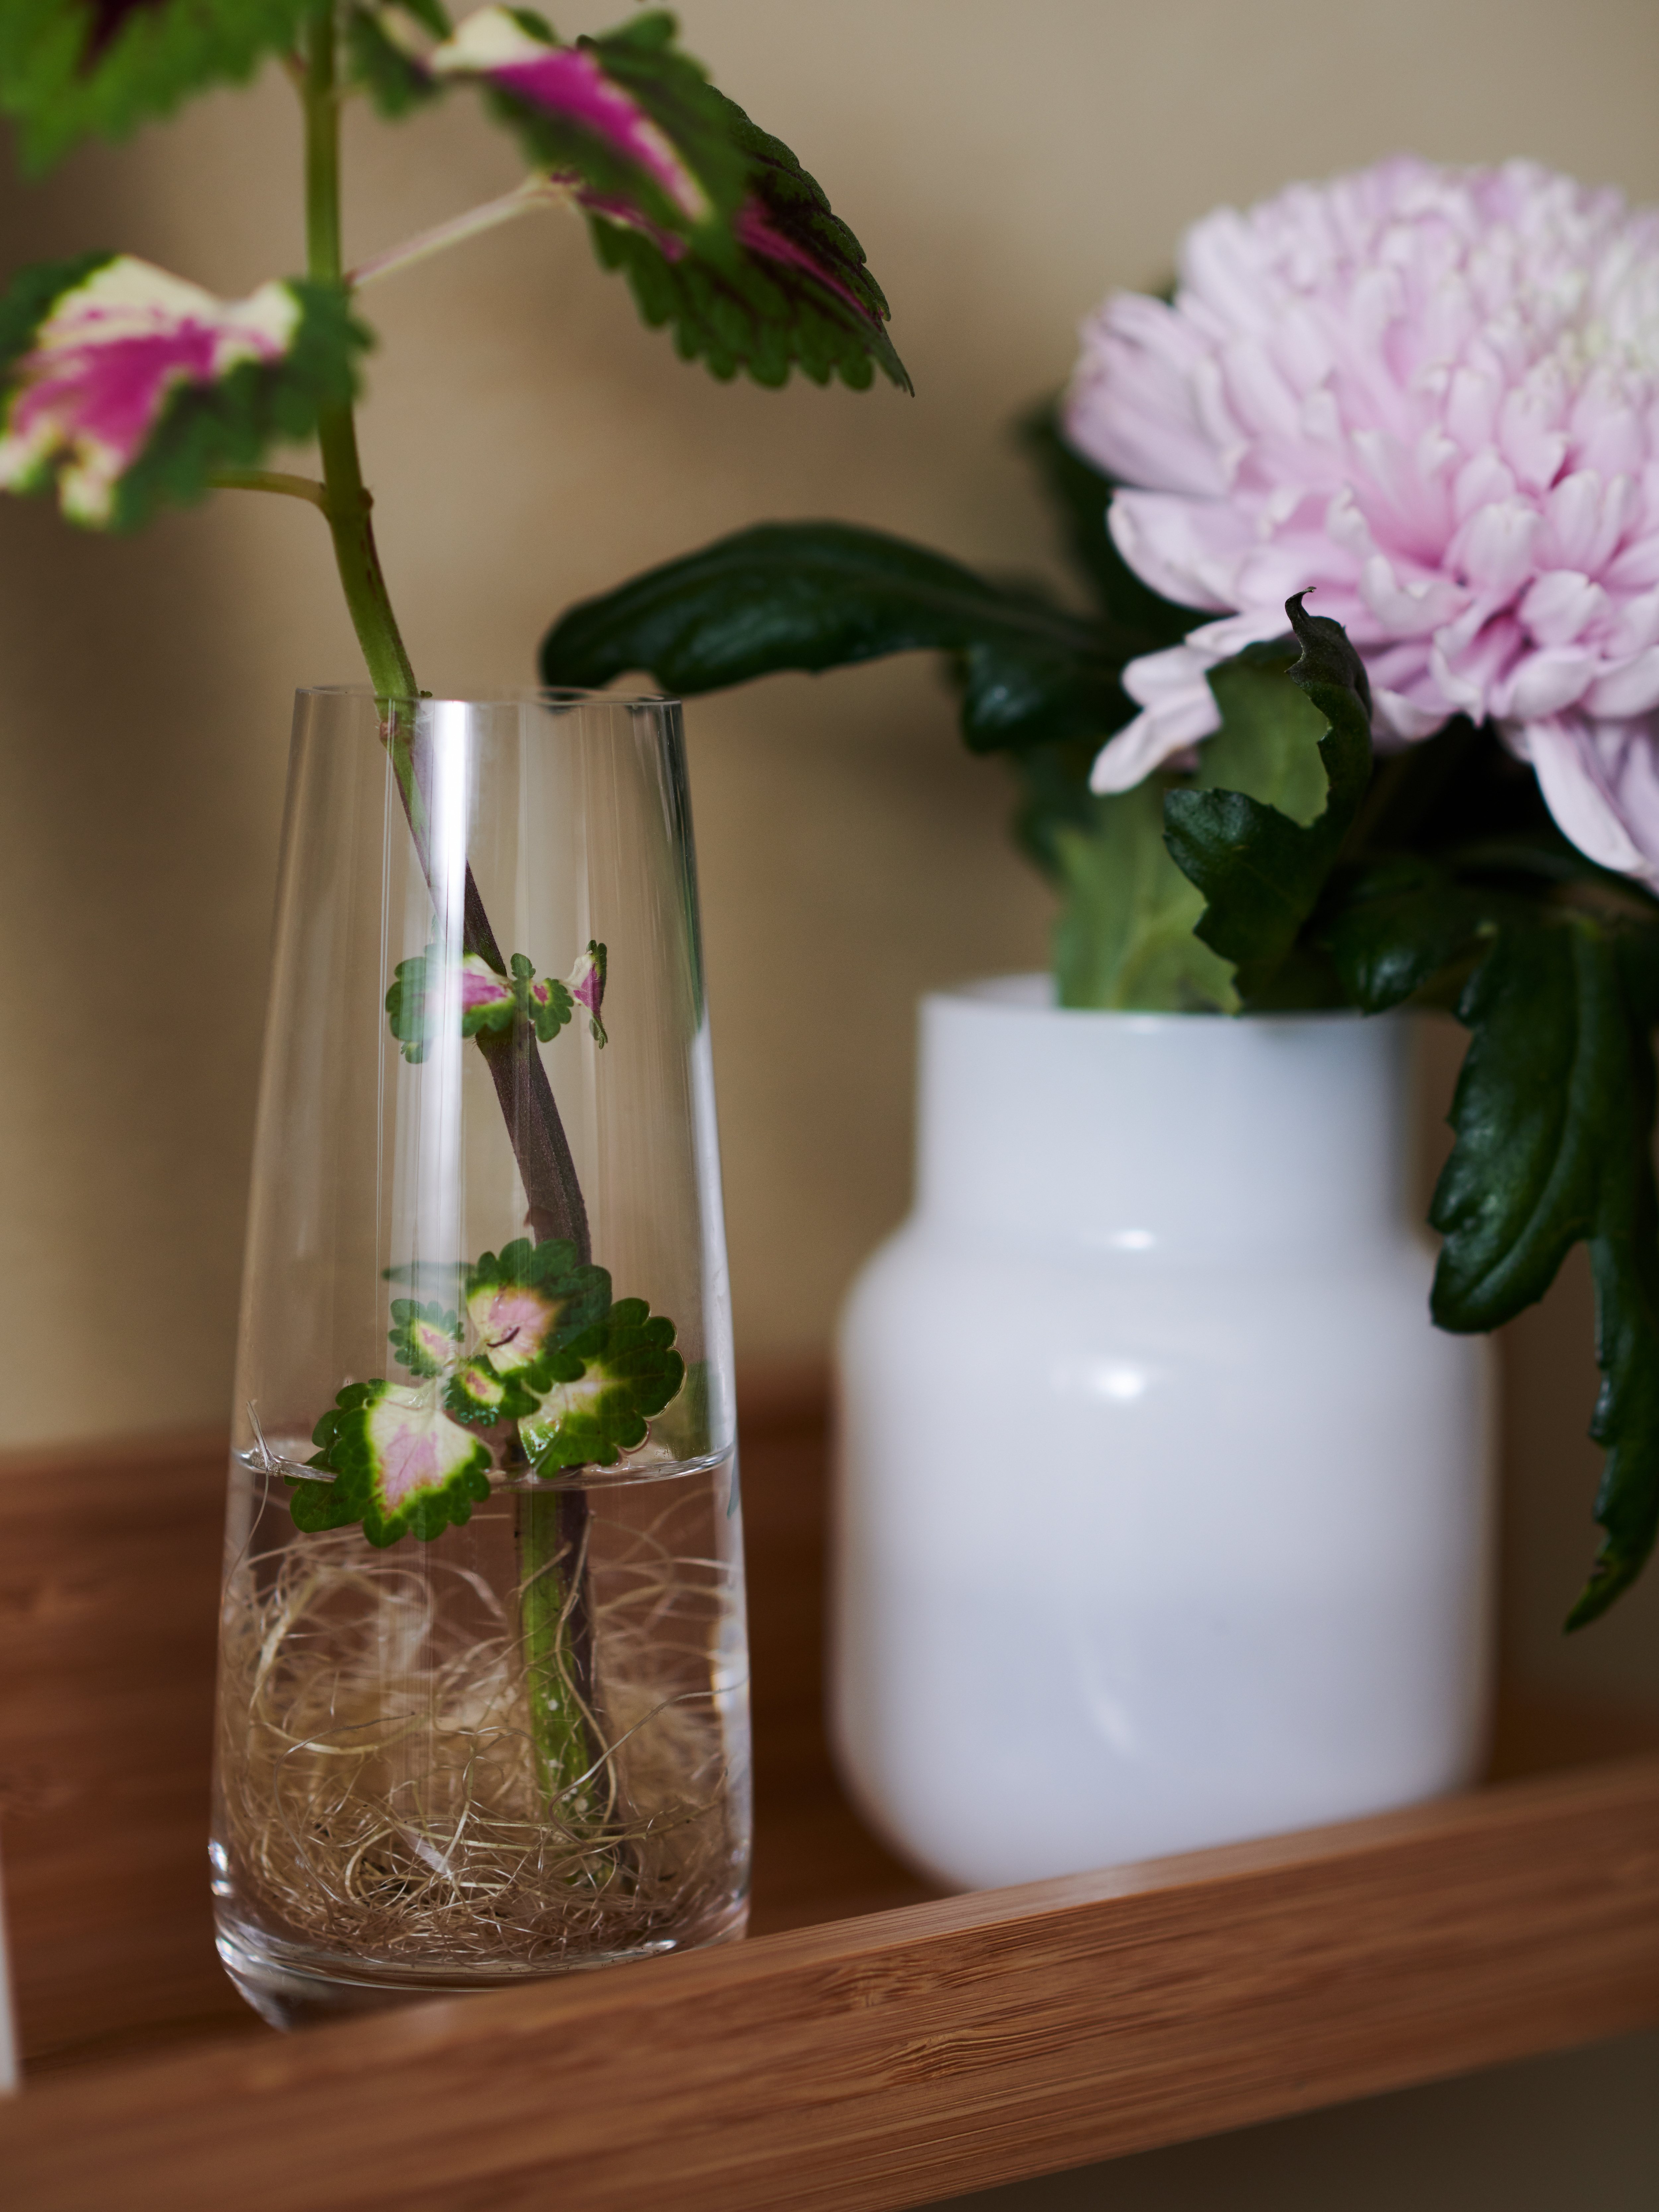 Close-up of wooden shelf with a transparent BERÄKNA vase and a white FÖRENLIG vase, both of which have flowers in them.